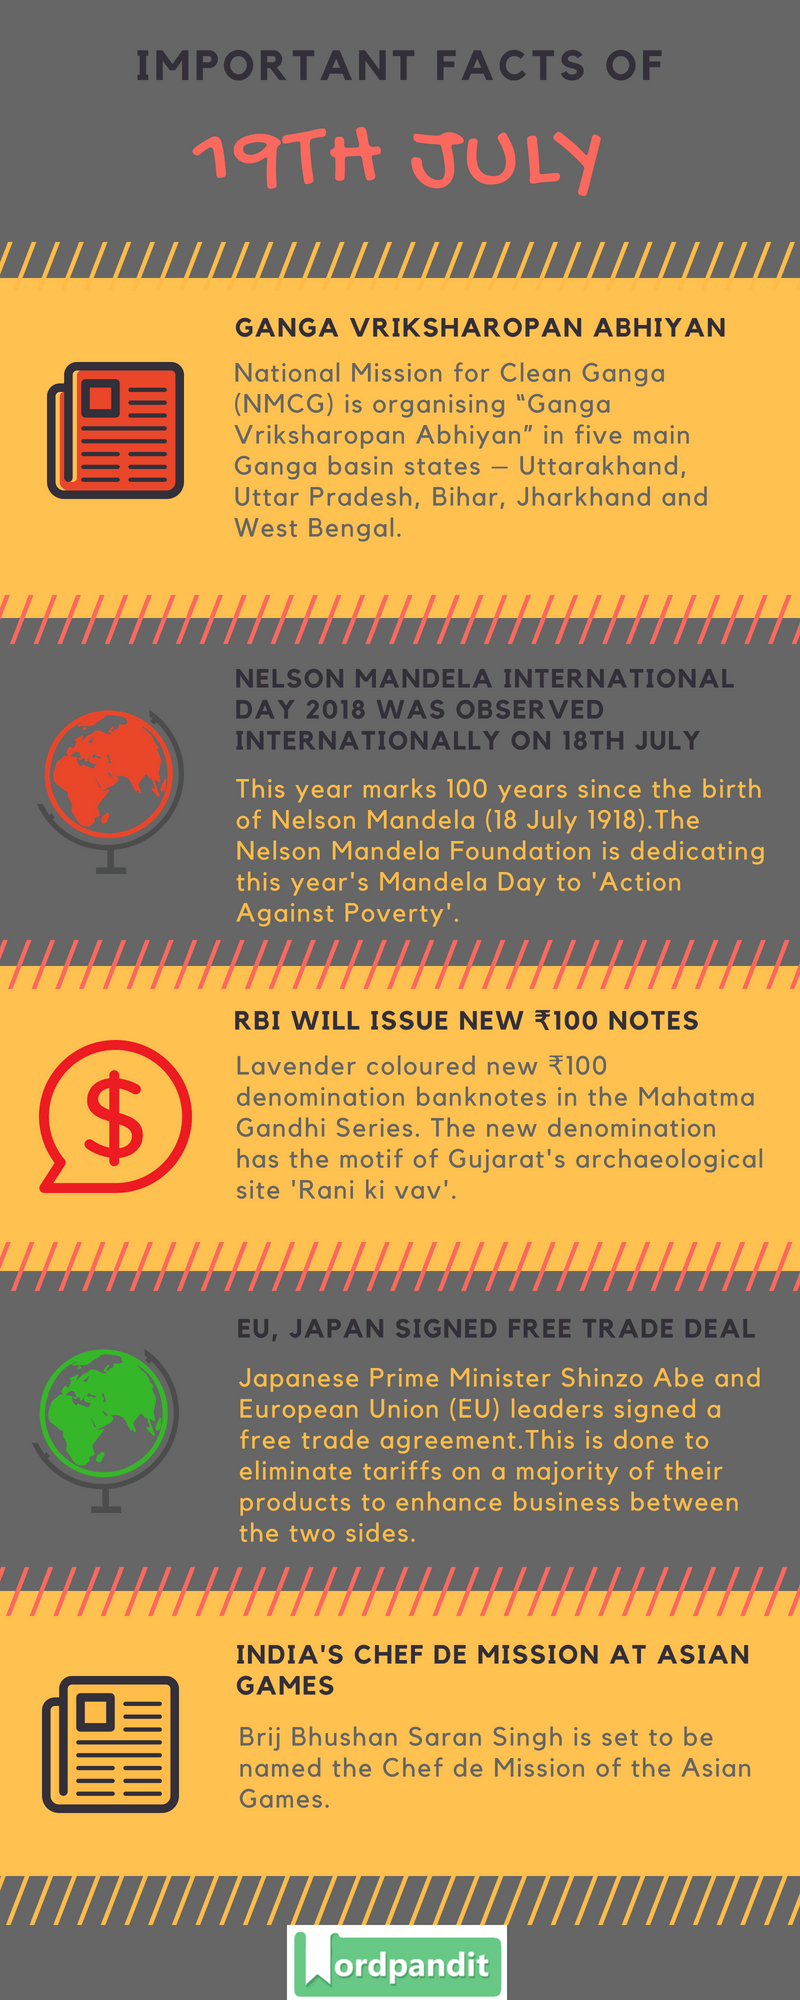 Daily Current Affairs 19 July 2018 Current Affairs Quiz July 19 2018 Current Affairs Infographic